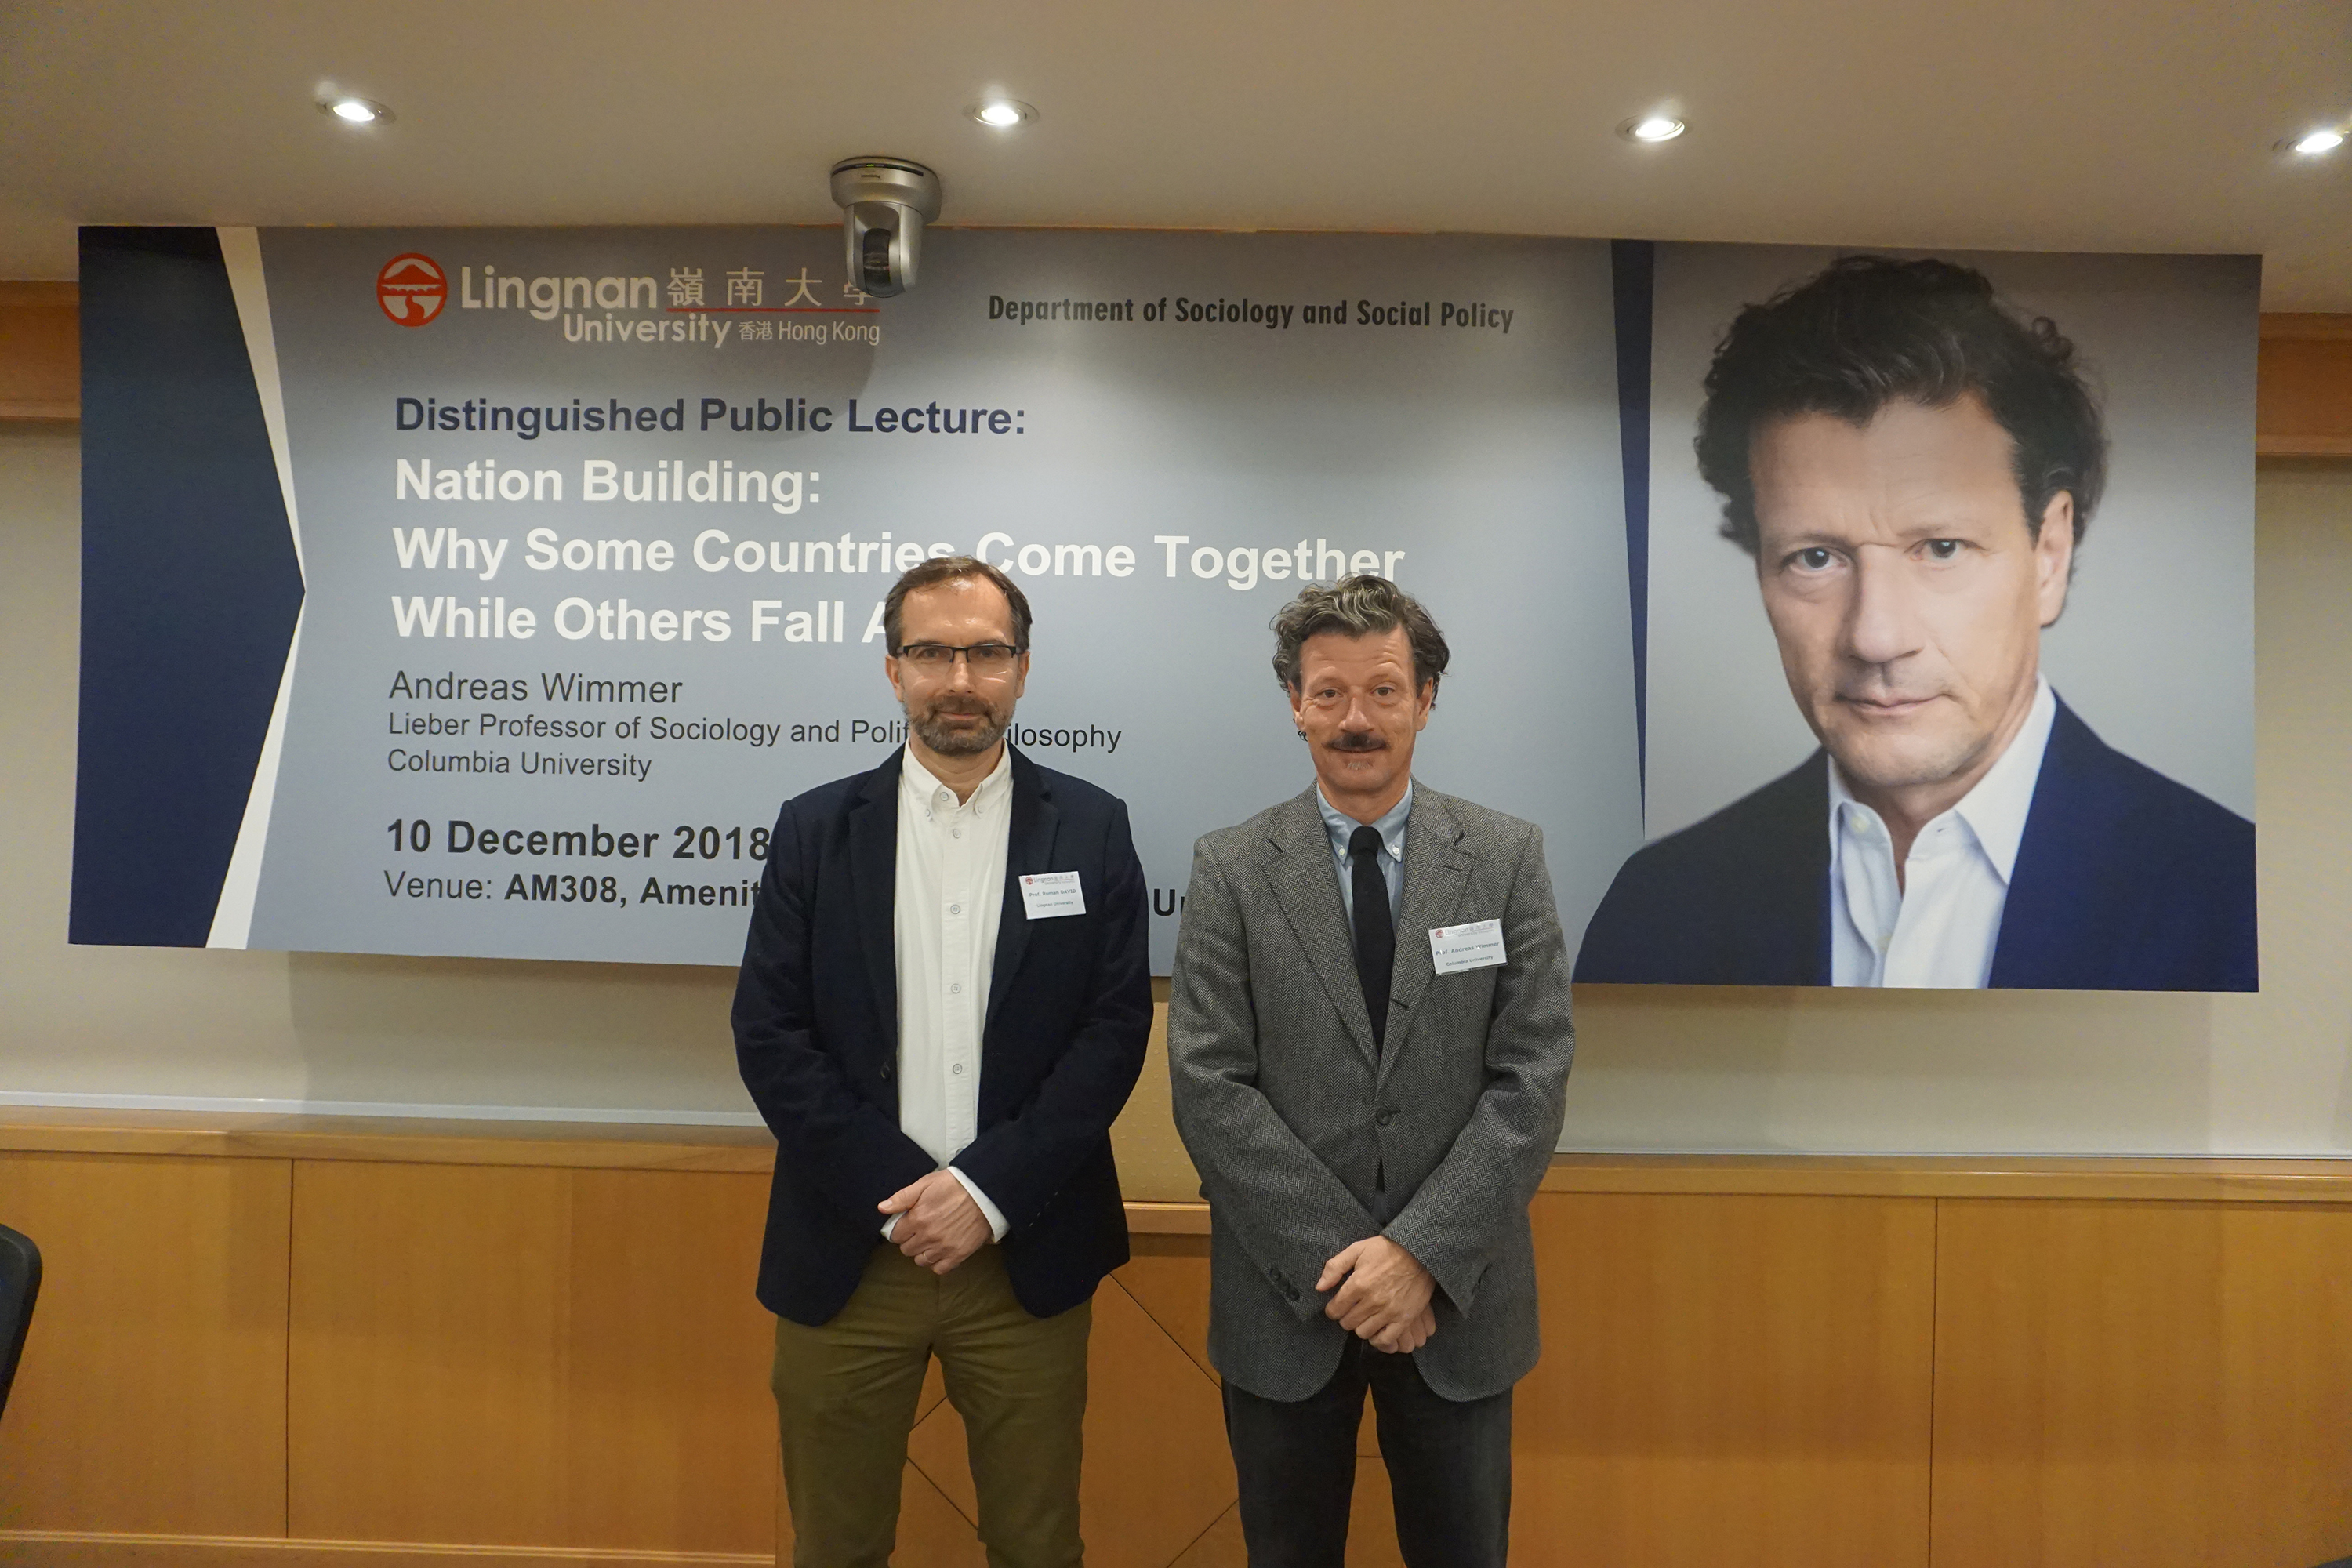 Professor Andreas Wimmer shares his insights on researching nation building at Distinguished Public Lecture in Lingnan University